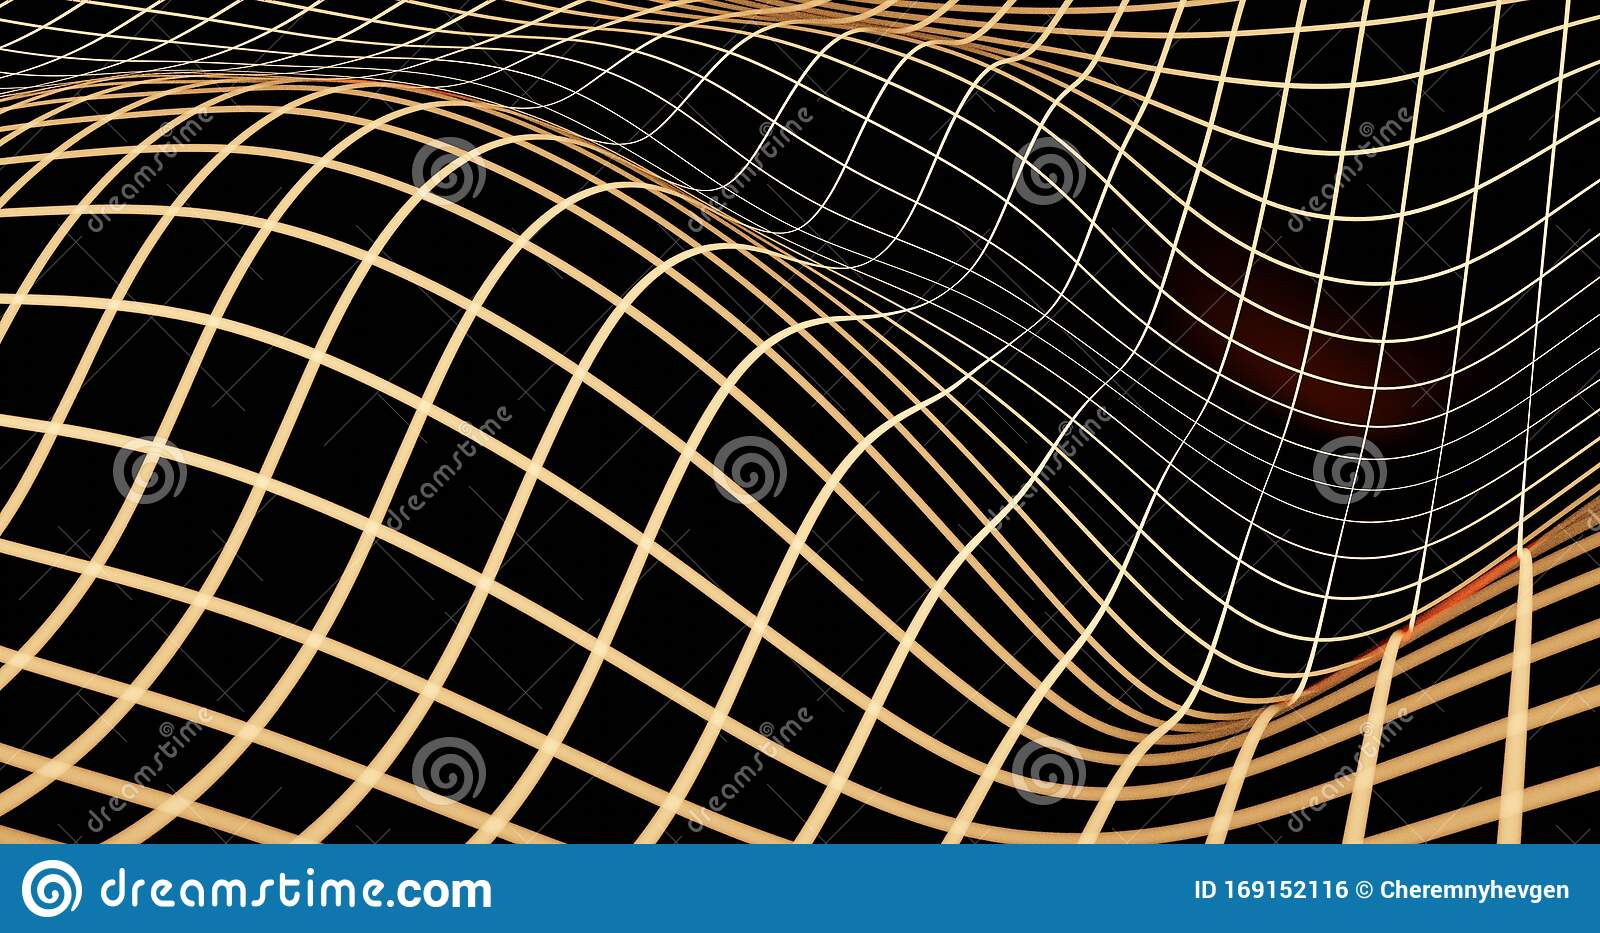 https://thumbs.dreamstime.com/z/yellow-net-square-net-abstraction-d-black-background-neural-network-wave-volume-net-yellow-169152116.jpg